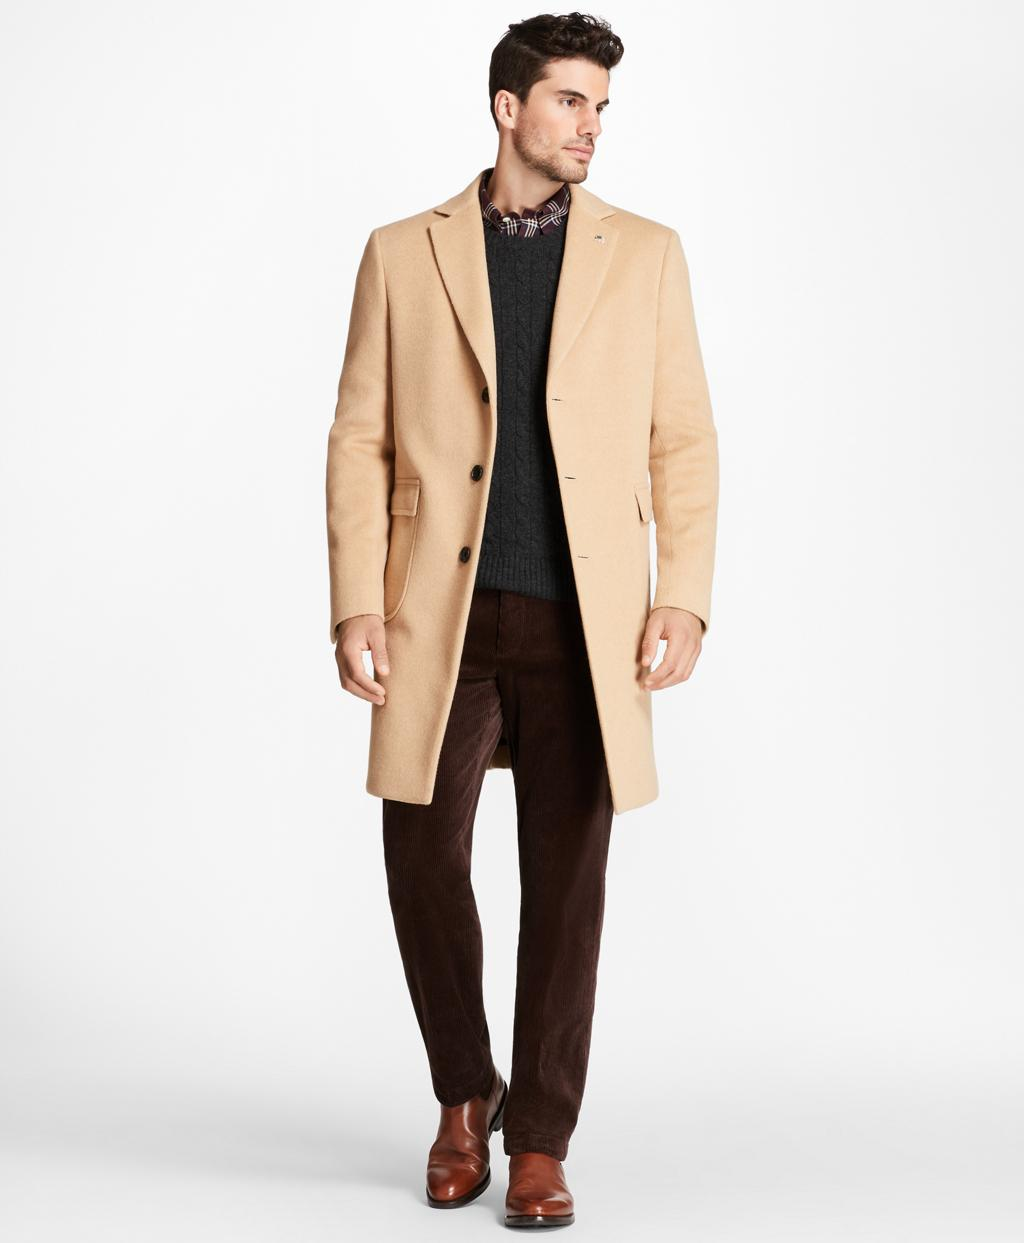 db058bb164f80 Lyst - Brooks Brothers Camel Hair Polo Coat in Natural for Men